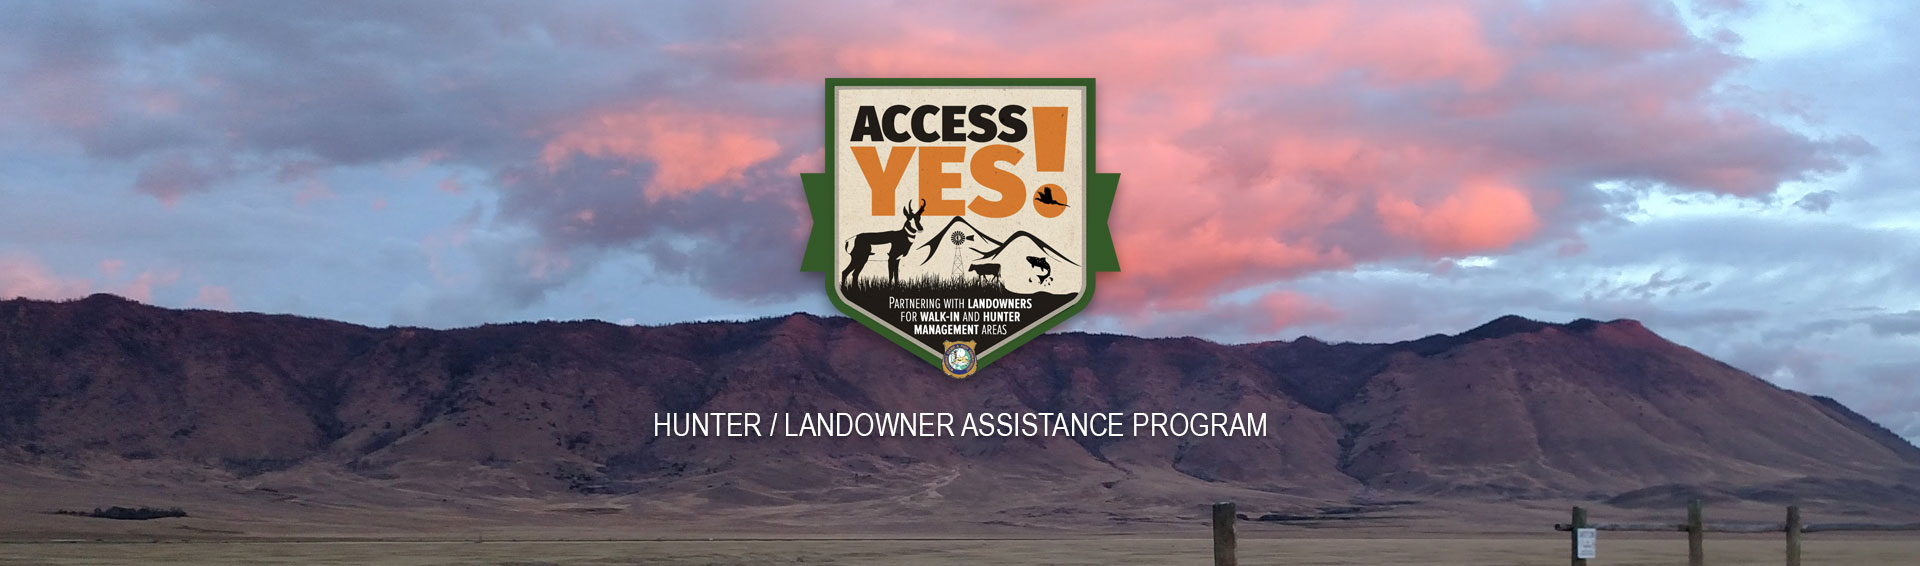 Hunter/Landowner Assistance Program banner image